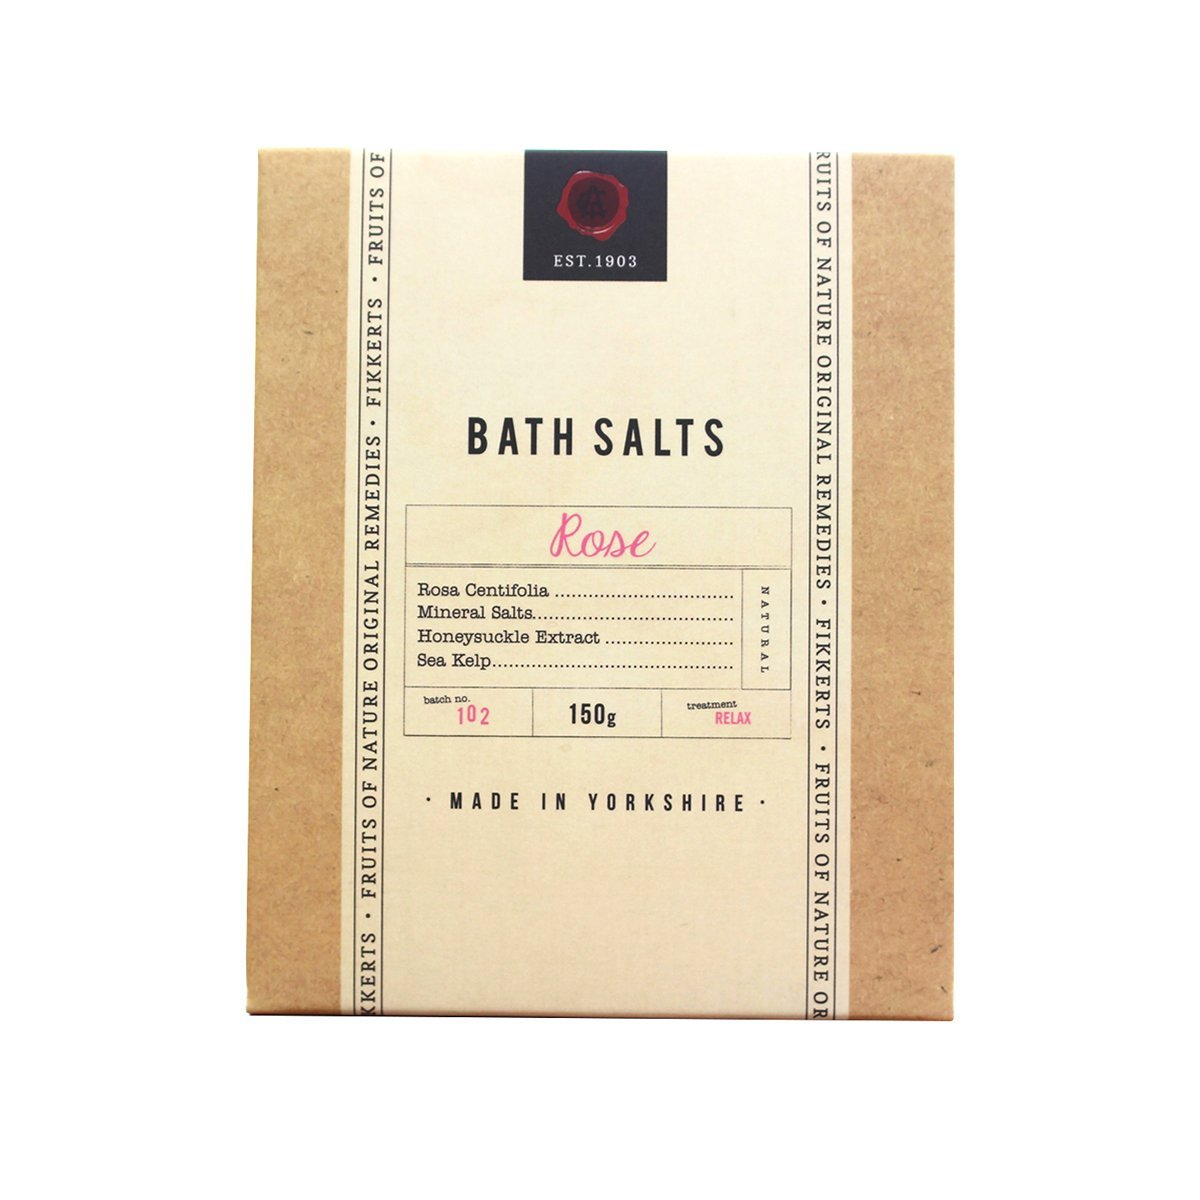 Rose Bath Salts 150g - BRIT LOCKER